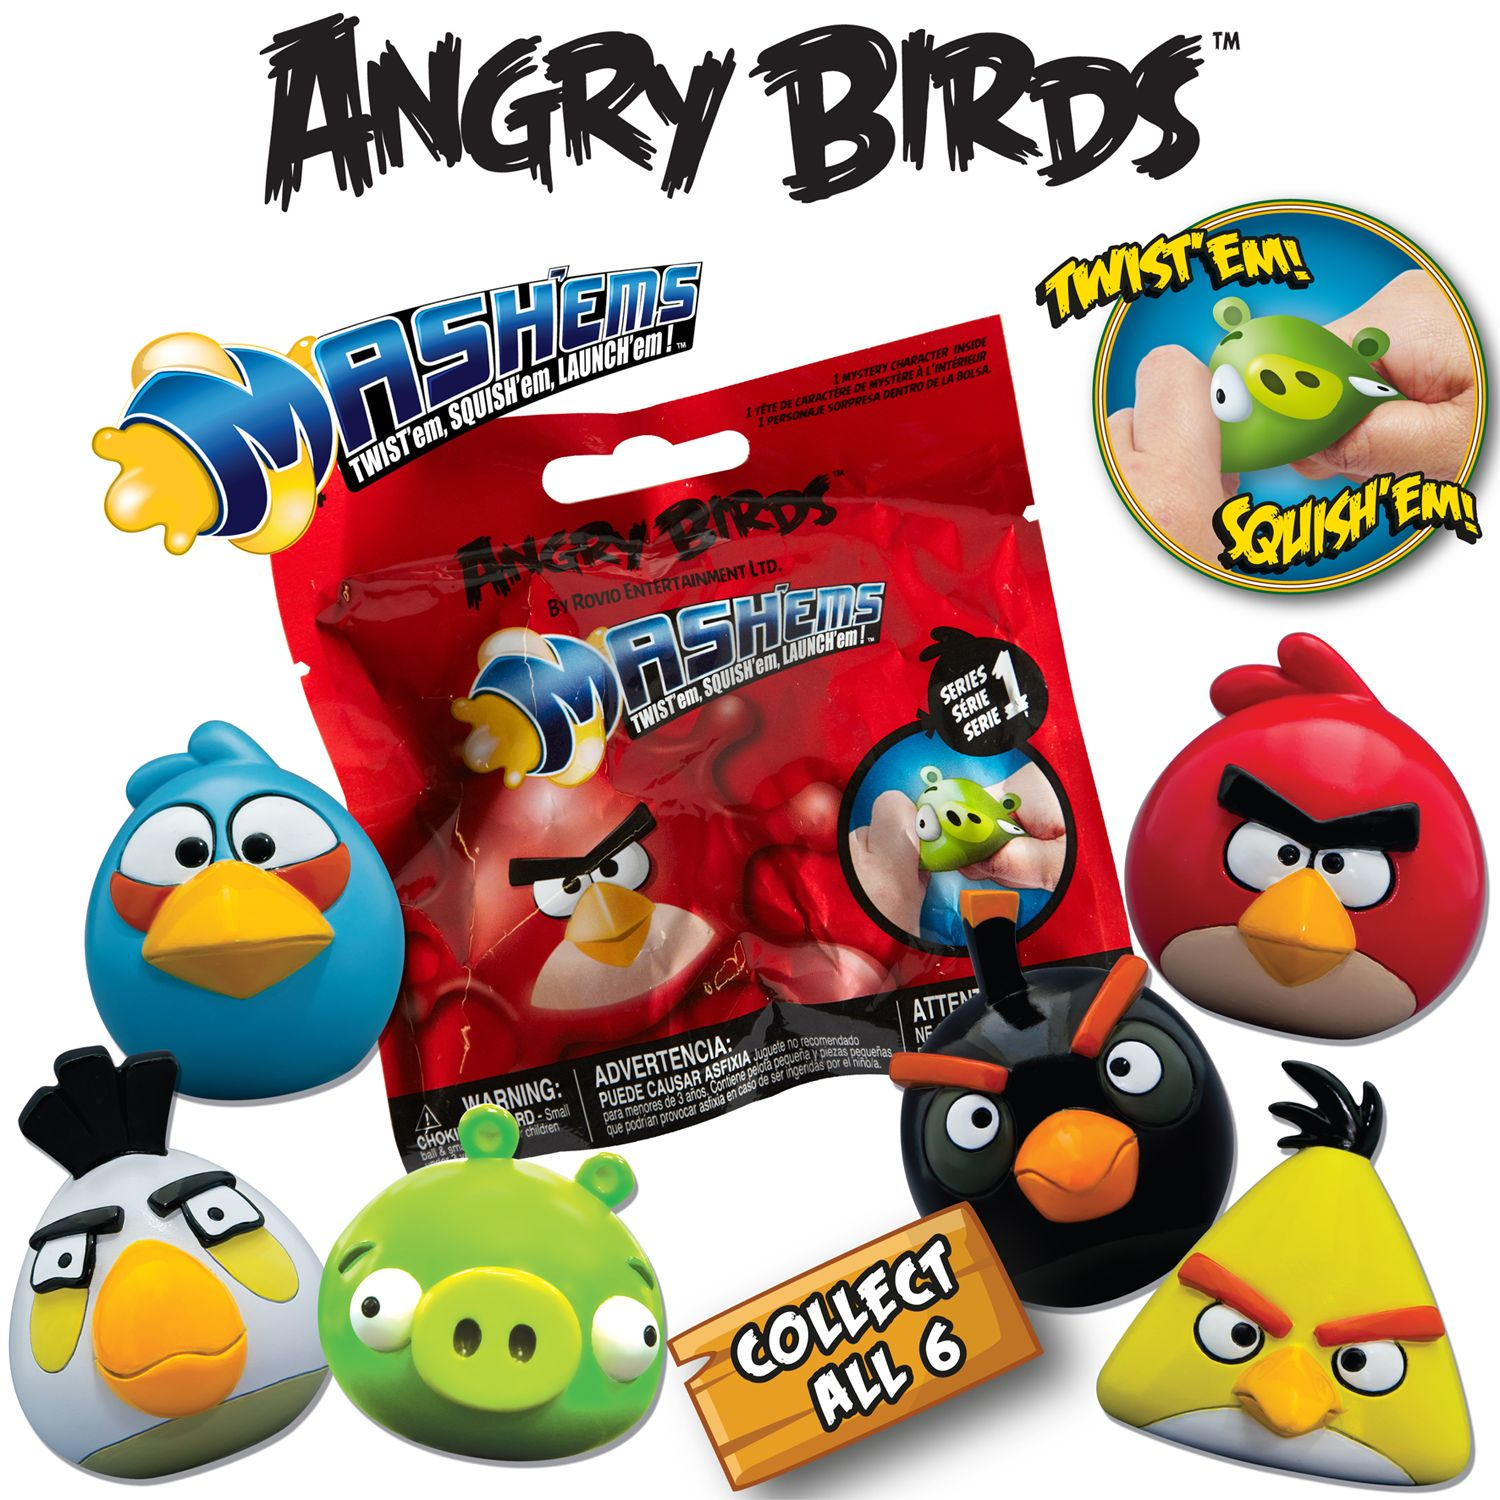 Angry Birds Mash'ems Foil Bag, Assorted